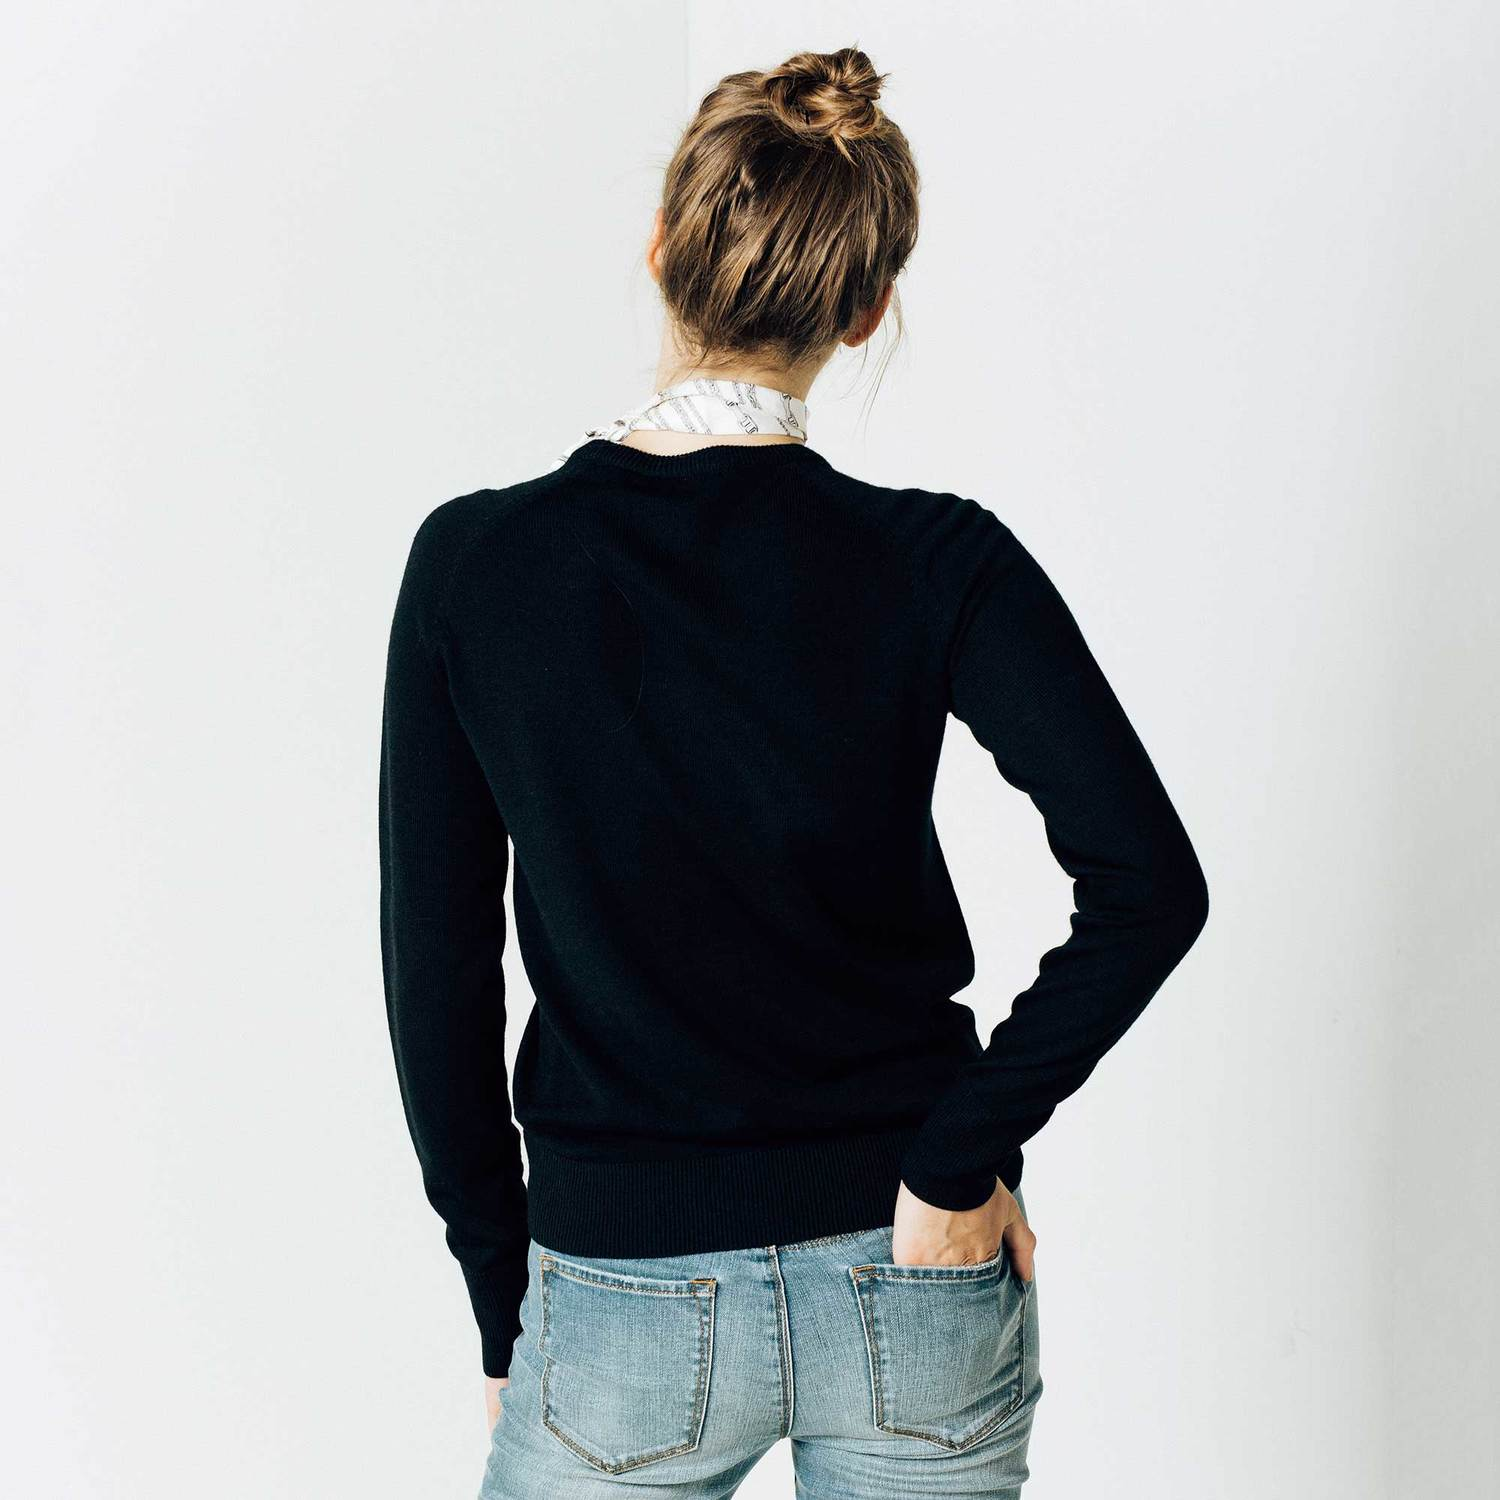 Womens Wool Crew Neck Pullover Sweater In Black $90 | DSTLD